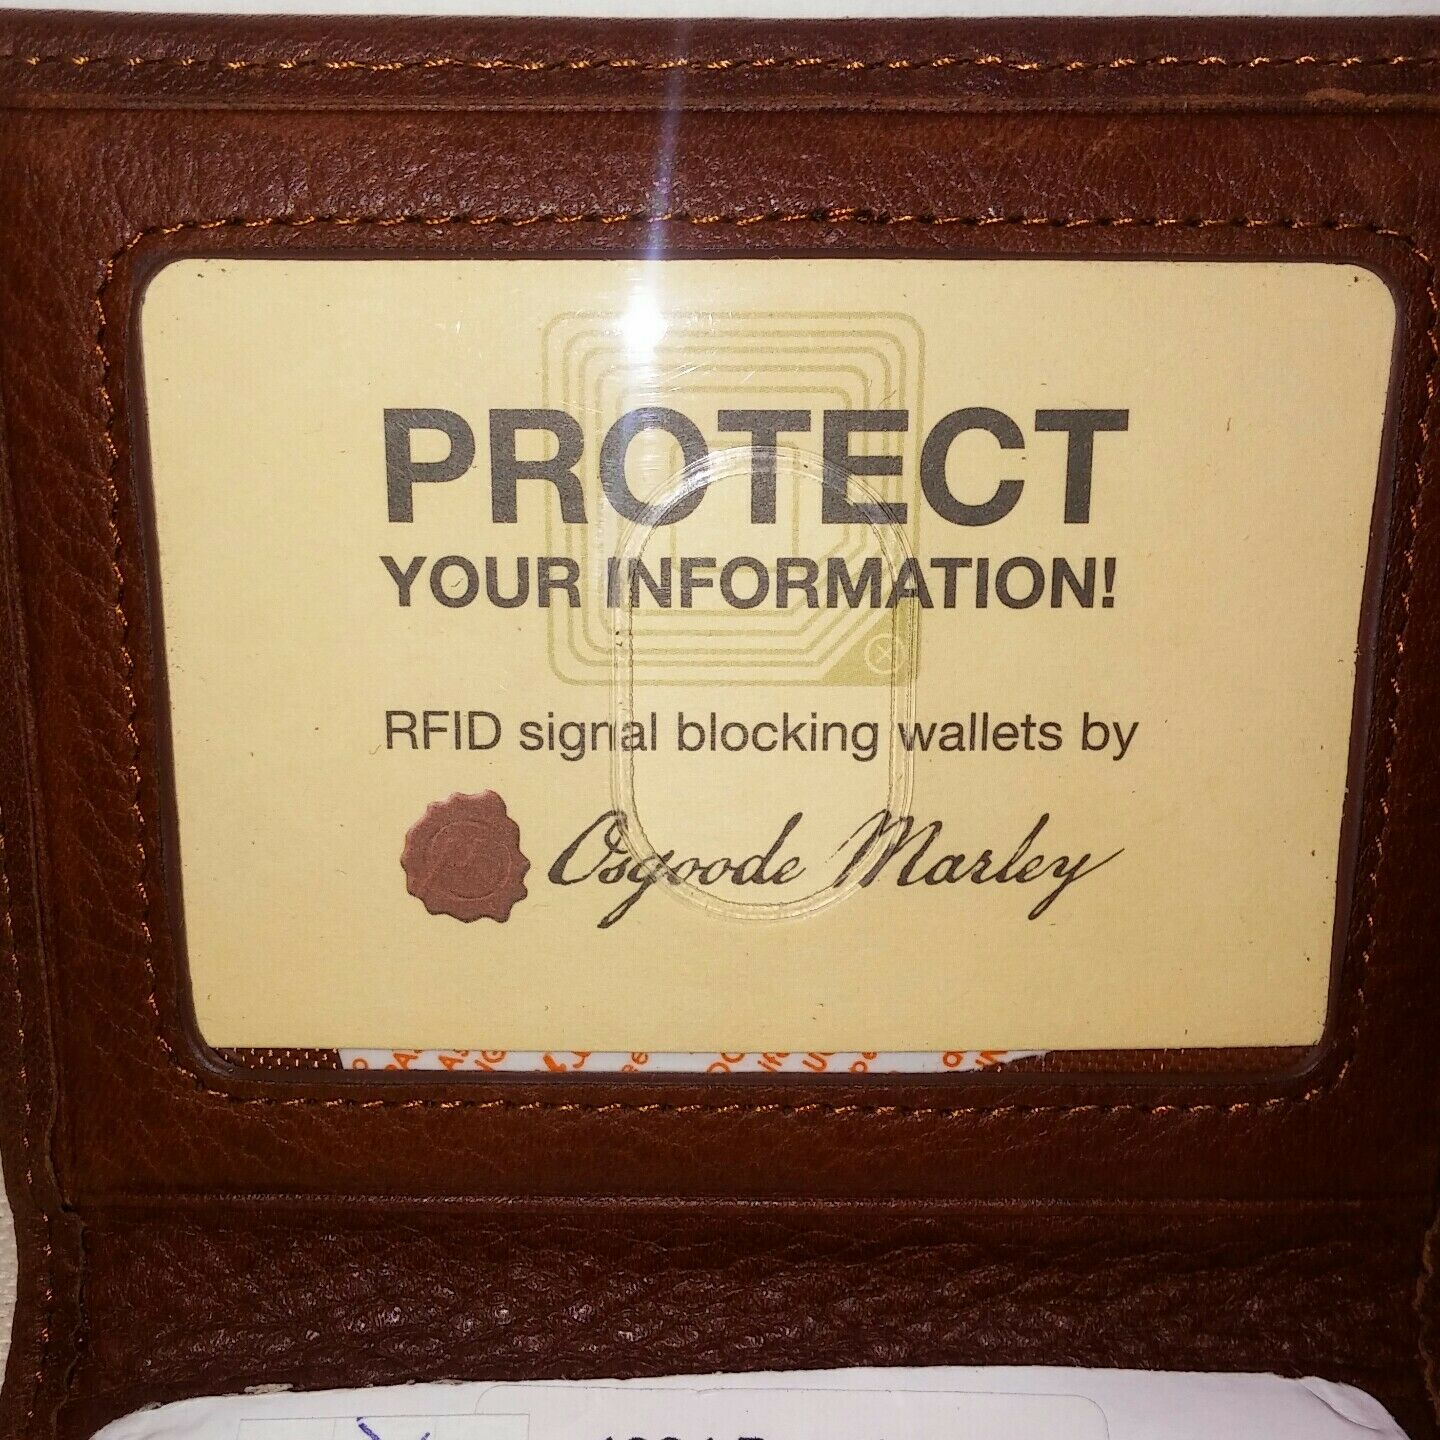 Osgoode Marley credit card and ID Case